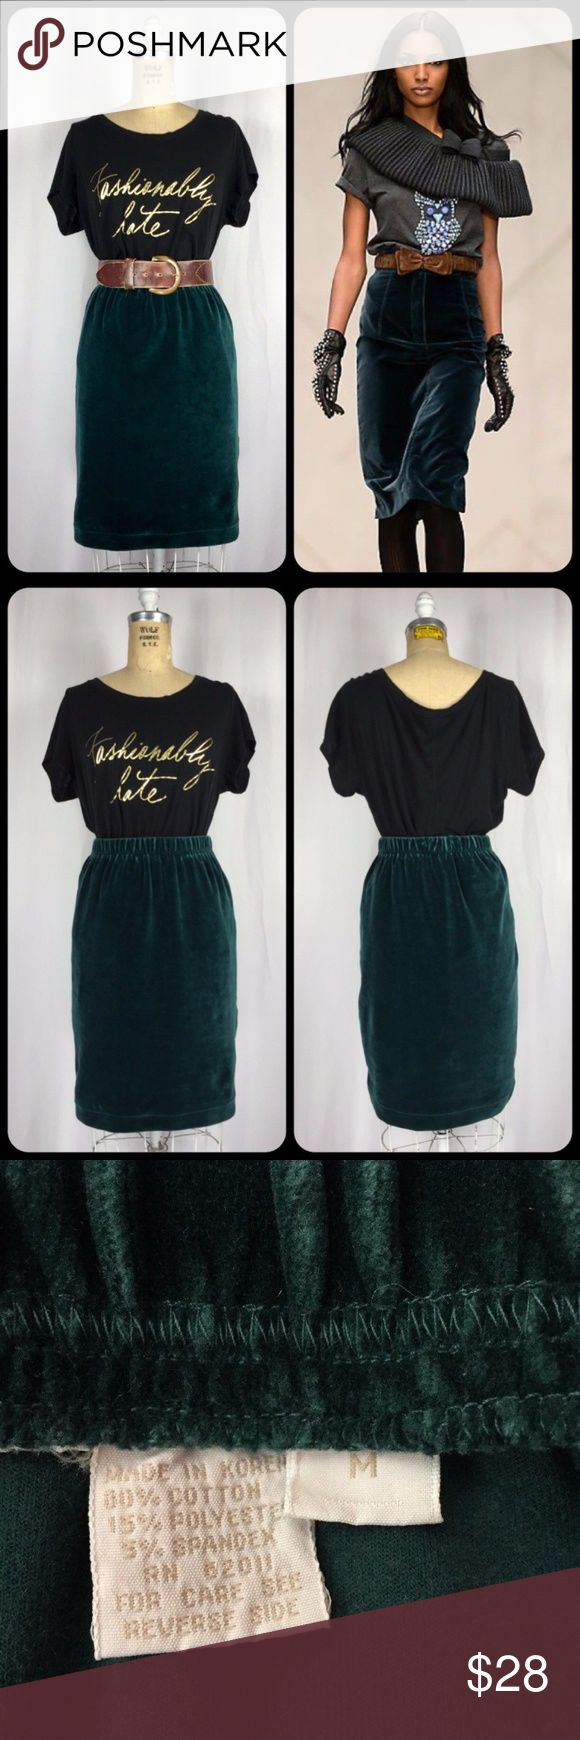 """Vintage Emerald Stretch Velvet Velour Pencil Skirt Vintage Emerald Green Stretch Velvet Velour Pencil Skirt. Excellent vintage condition. Stretch Stretch cotton blend velour. Full elastic waistline. Unlined. Machine washable. Labeled a Medium. Measurements of the item in inches when flat: Waist: 13""""- 17"""" Hips: 18"""" Hemline: 17"""" Length: 21"""" Feel free to contact me with any questions you may have. Please take a look at my other unique listings too. Thanks! Styling inspiration Burberry…"""